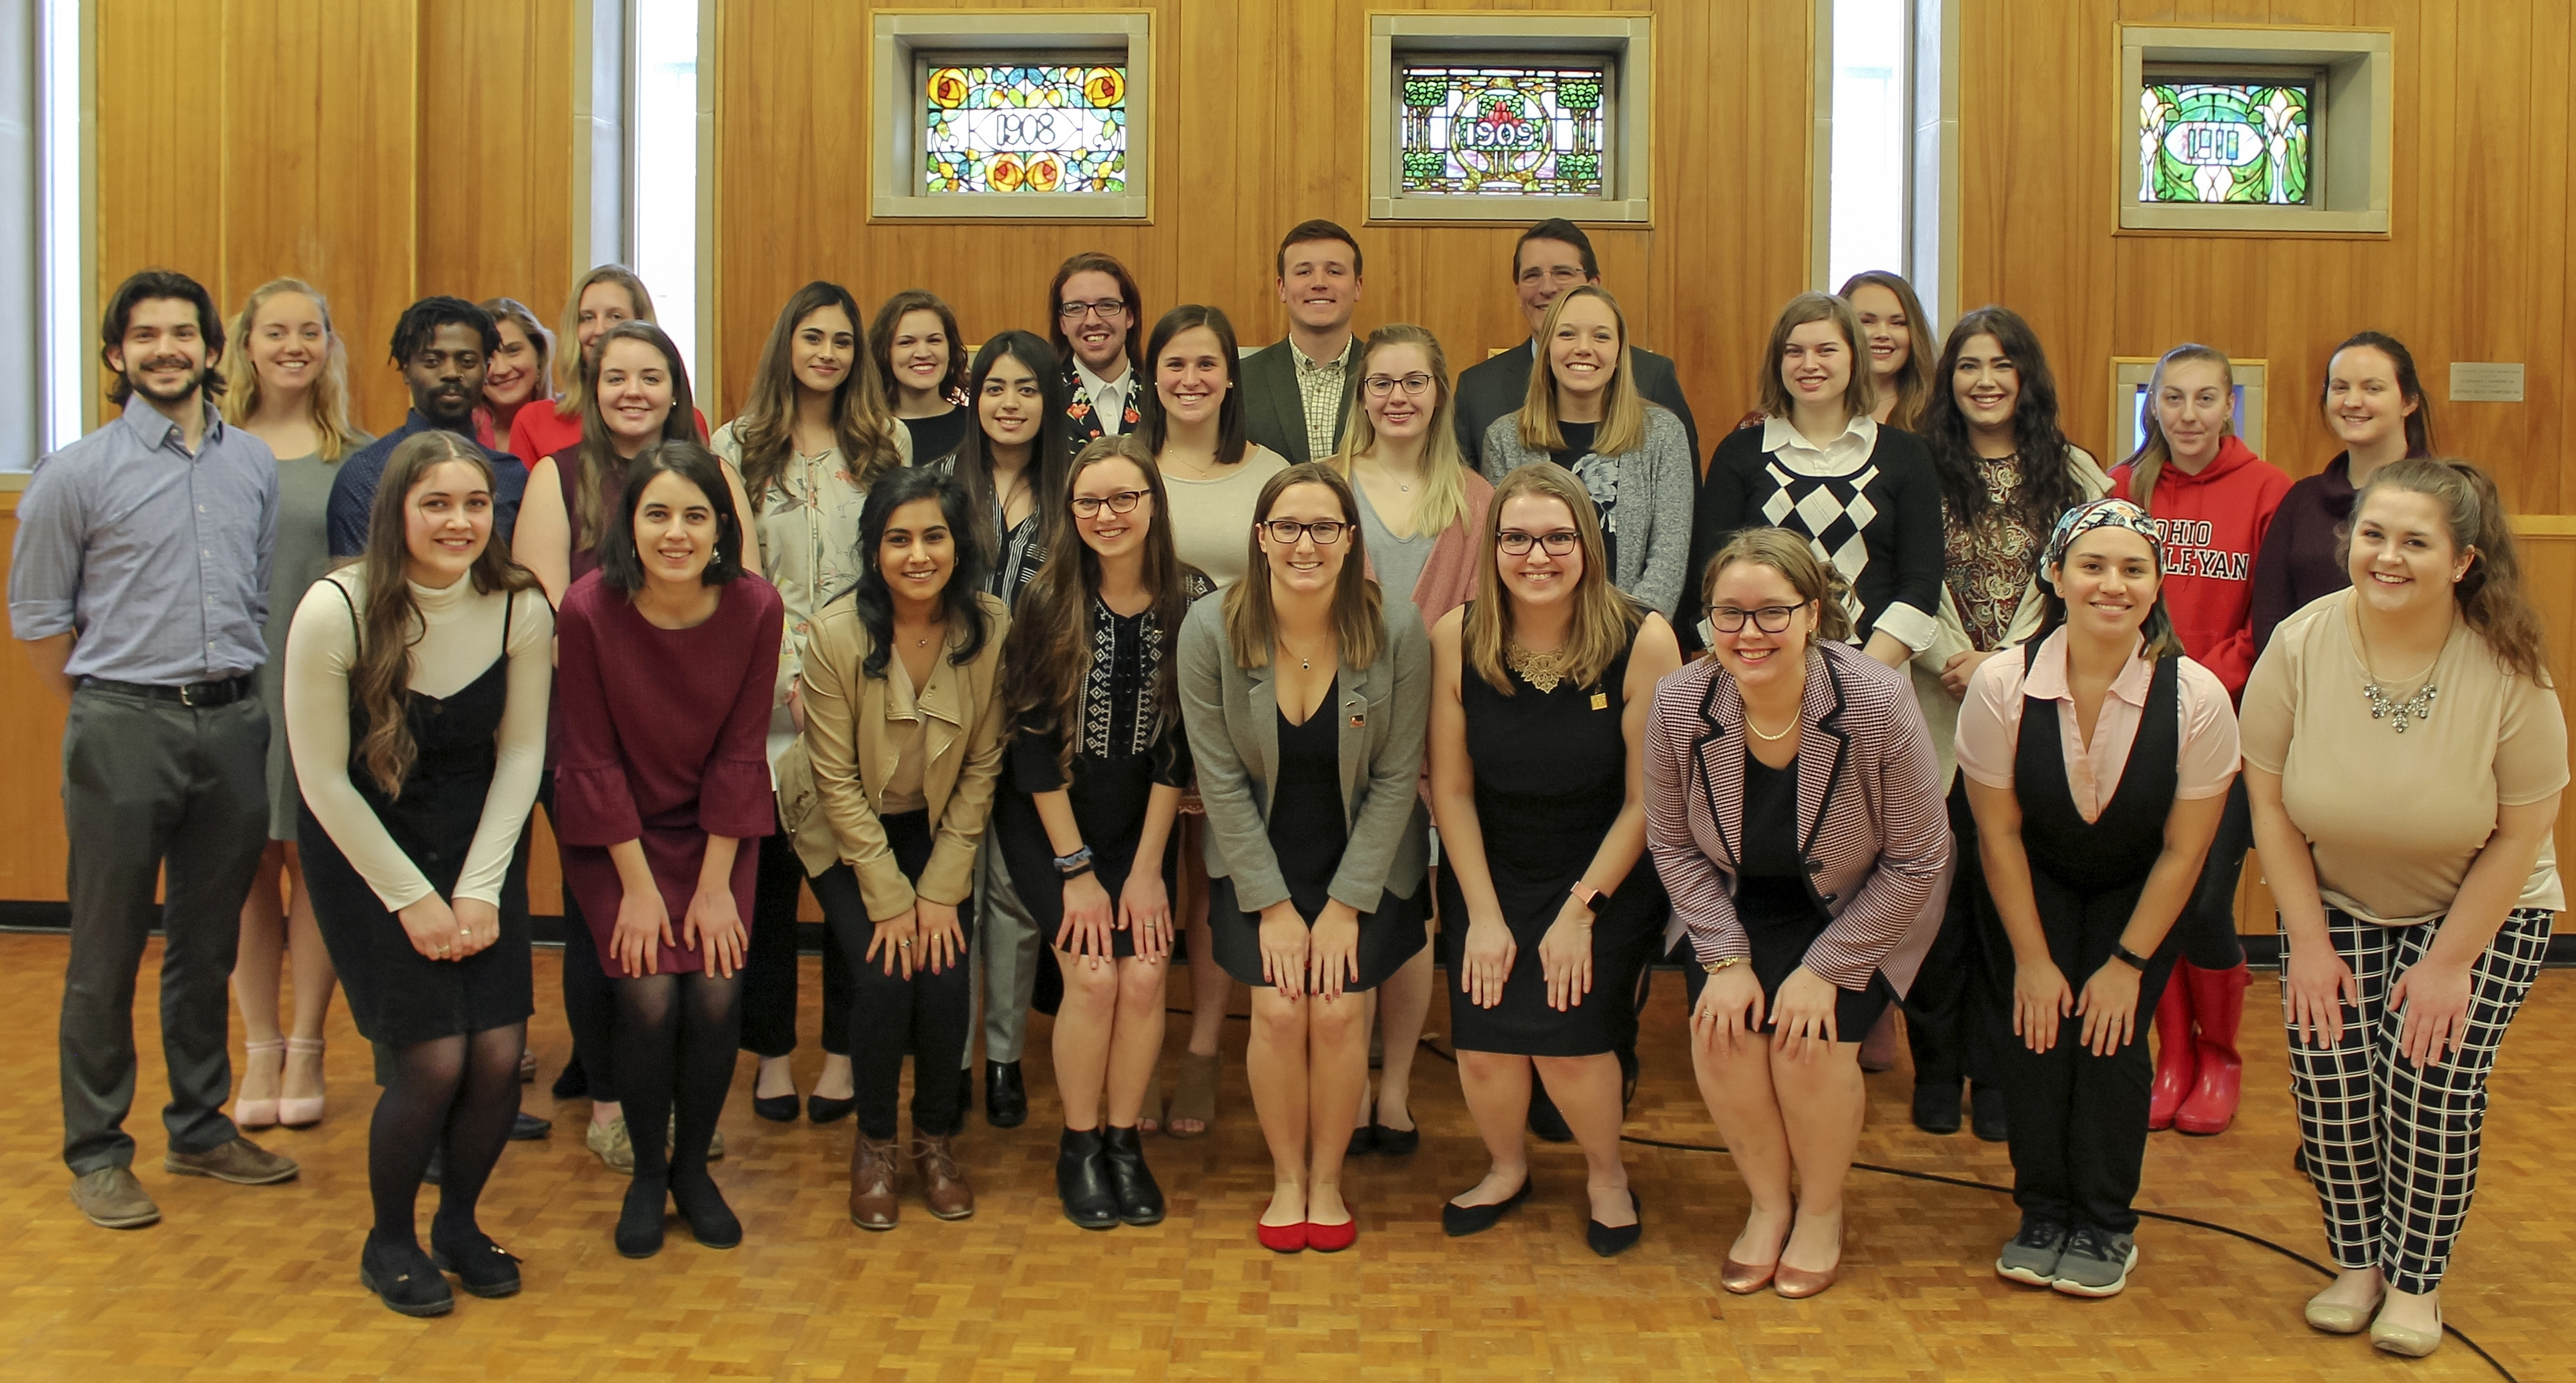 2019 ohio wesleyan mortar board members photo by hannah wargo 19